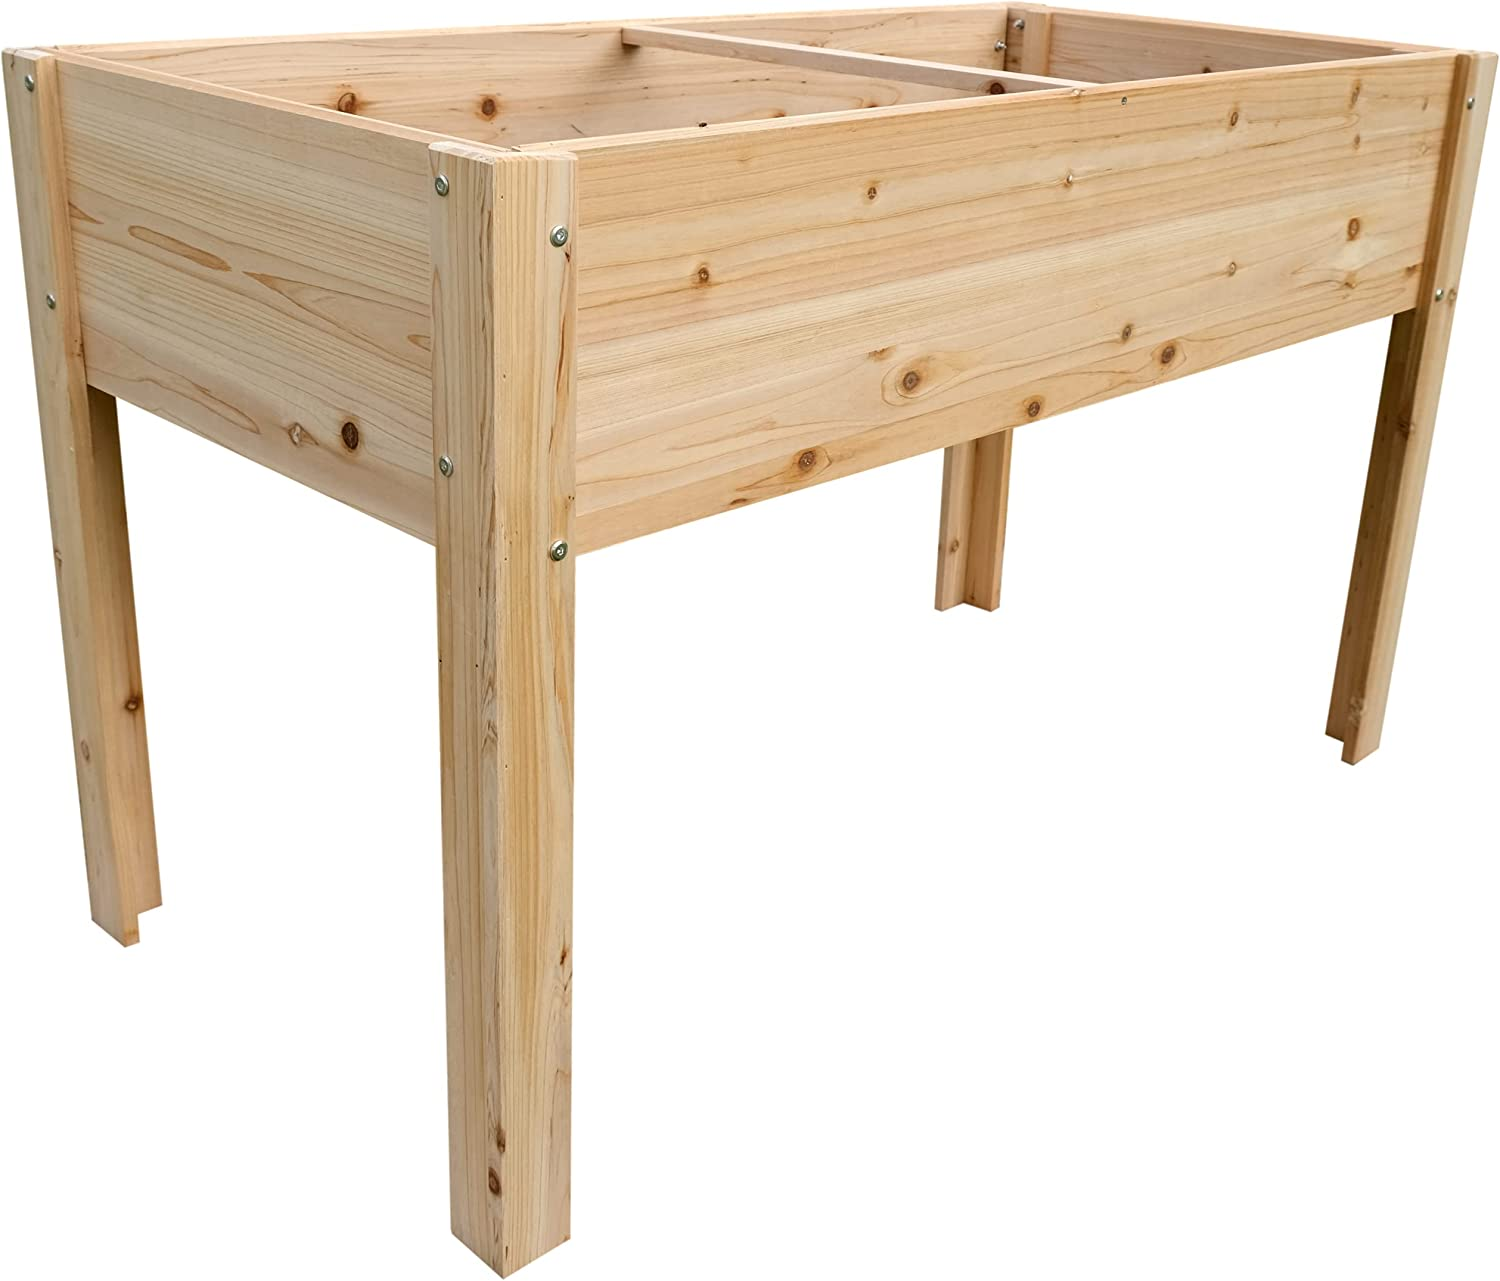 Boldly Growing Cedar Raised Planter Box with Legs - Elevated Outdoor Patio Cedar Garden Bed Kit to Grow Herbs and Vegetables - Unmatched Strength Lasts Years, Natural Rot-Resistant Wood (4x2) from